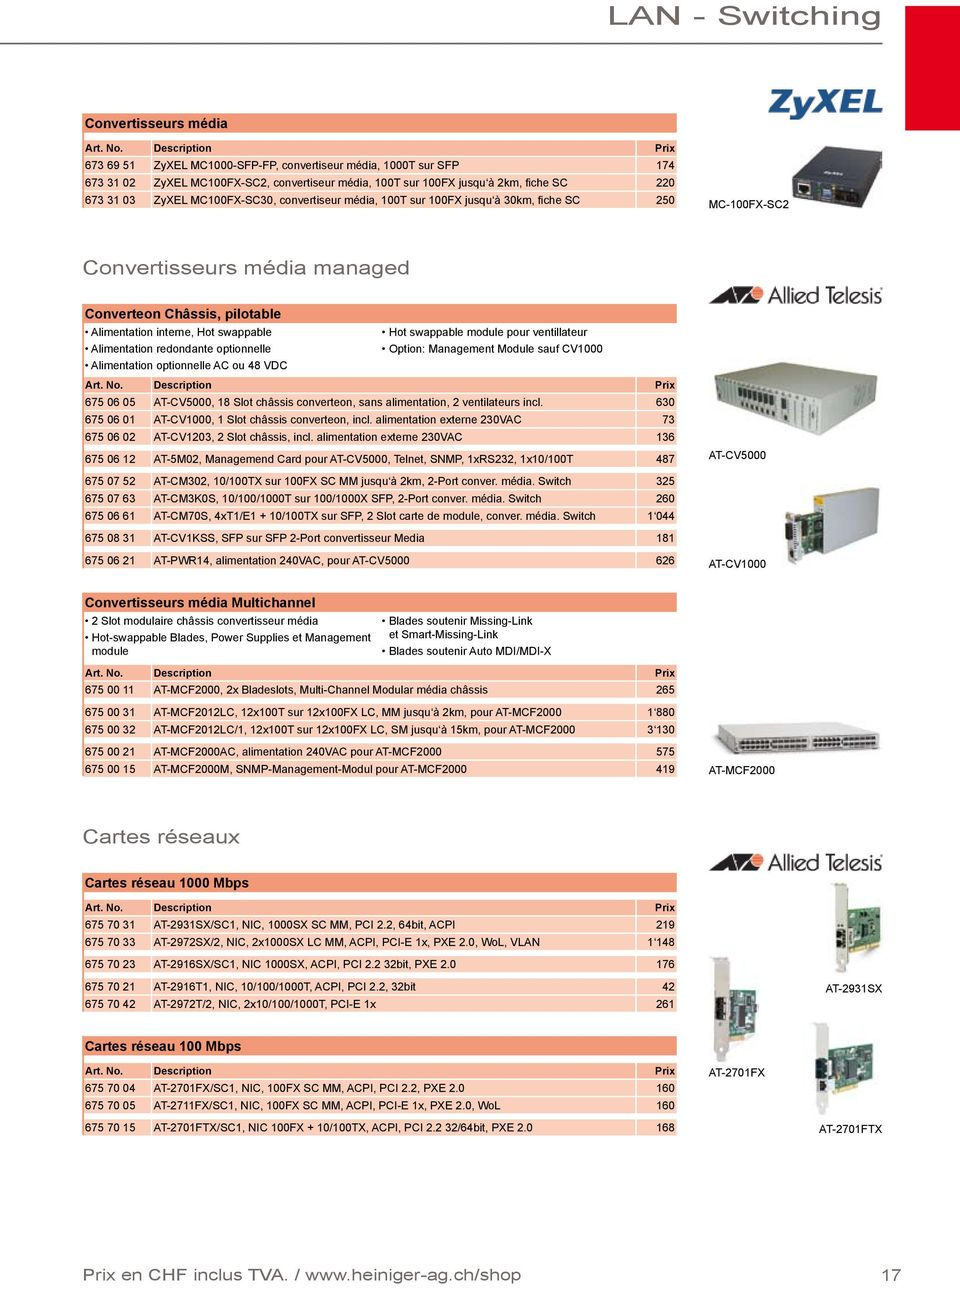 Alimentation redondante optionnelle Hot swappable module pour ventillateur Option: Management Module sauf CV1000 Alimentation optionnelle AC ou 48 VDC 675 06 05 AT-CV5000, 18 Slot châssis converteon,